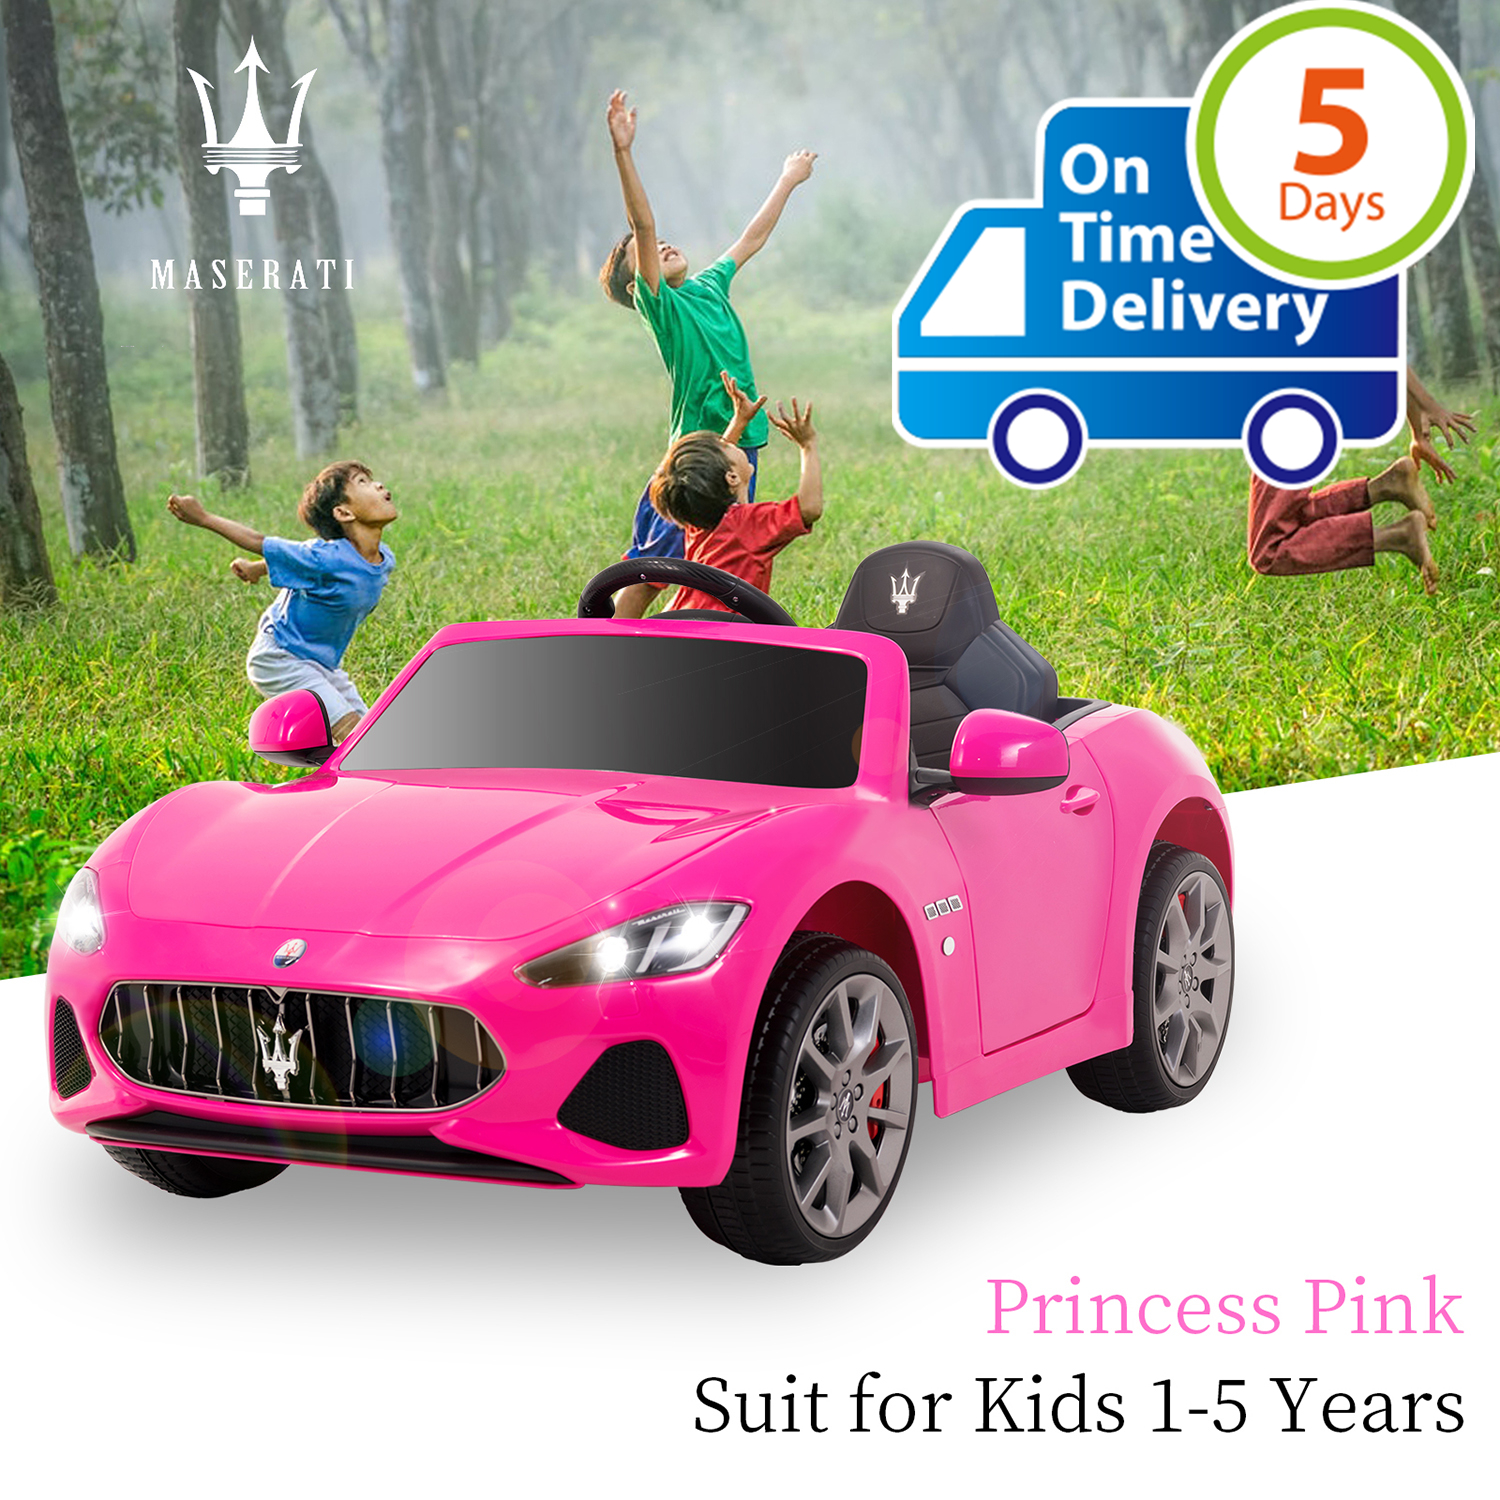 Uenjoy  12V Electric Kids Ride On Cars Motorized Vehicles for Girls W/Remote Control, Wheels Suspension, Mp3Uenjoy  12V Electric Kids Ride On Cars Motorized Vehicles for Girls W/Remote Control, Wheels Suspension, Mp3